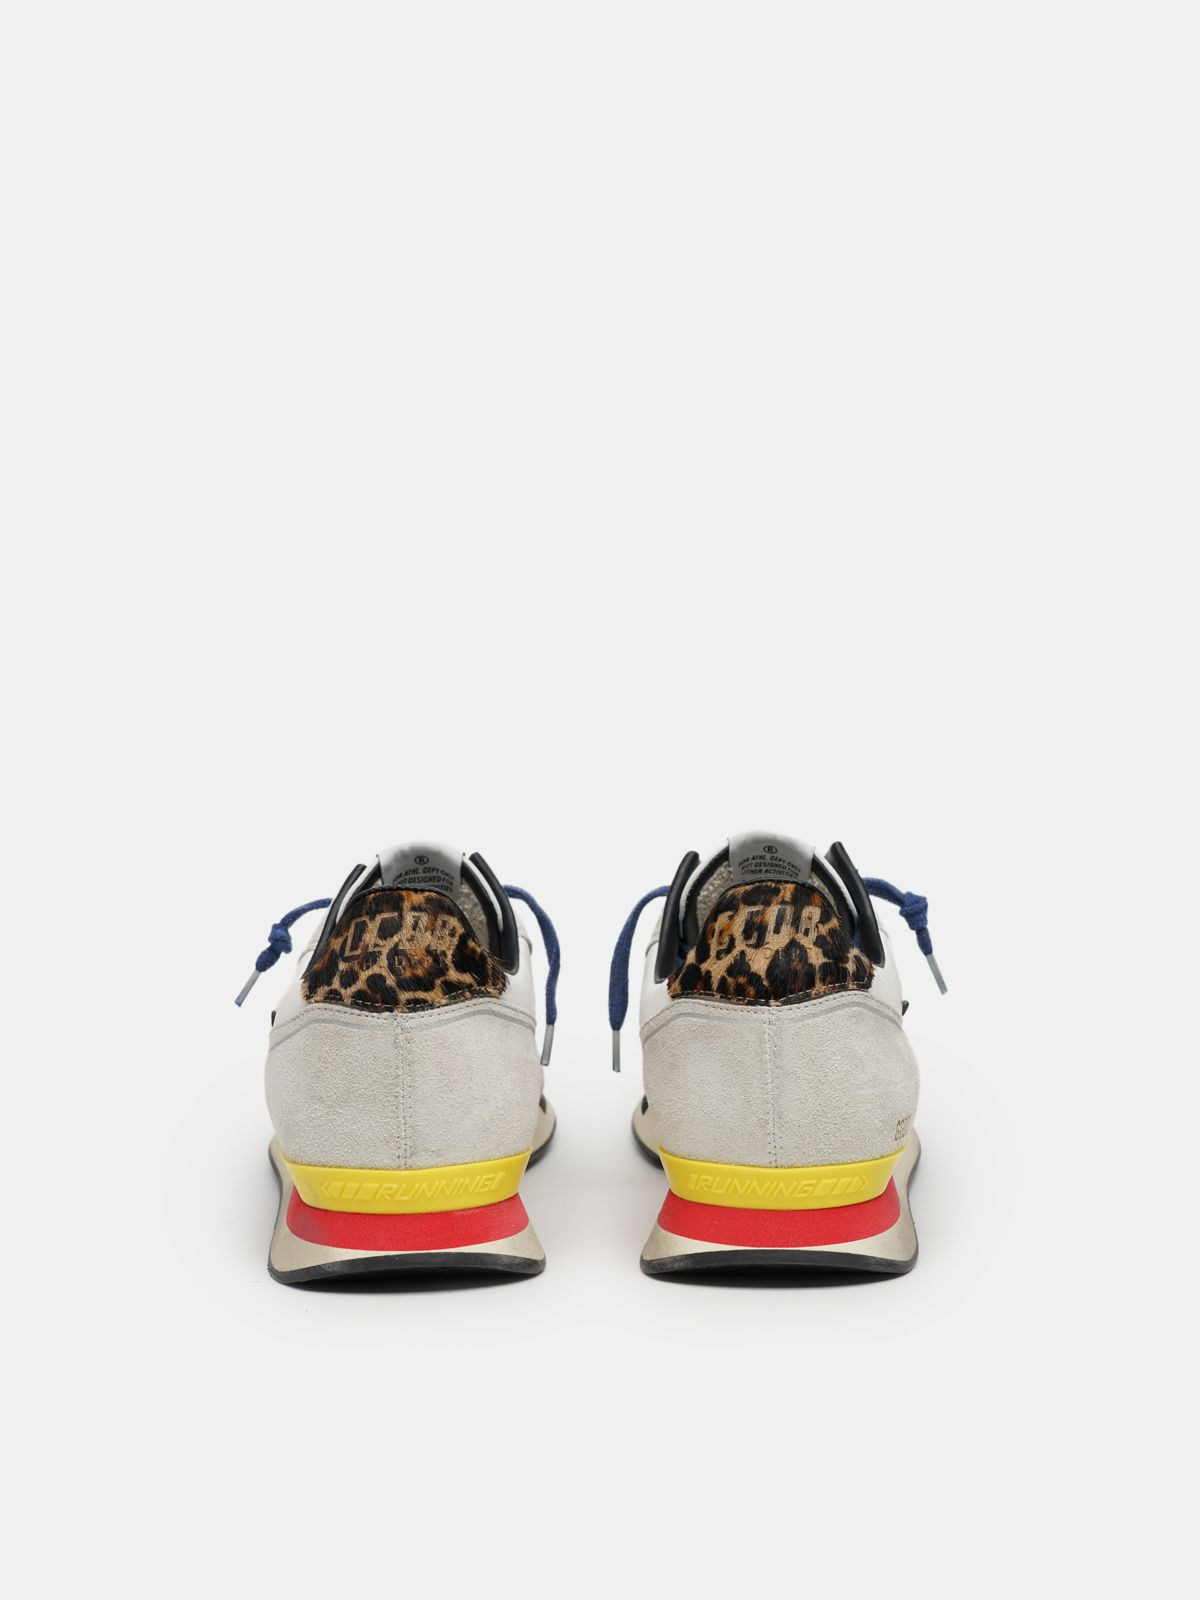 Golden Goose - Running sneakers with blue and red details in